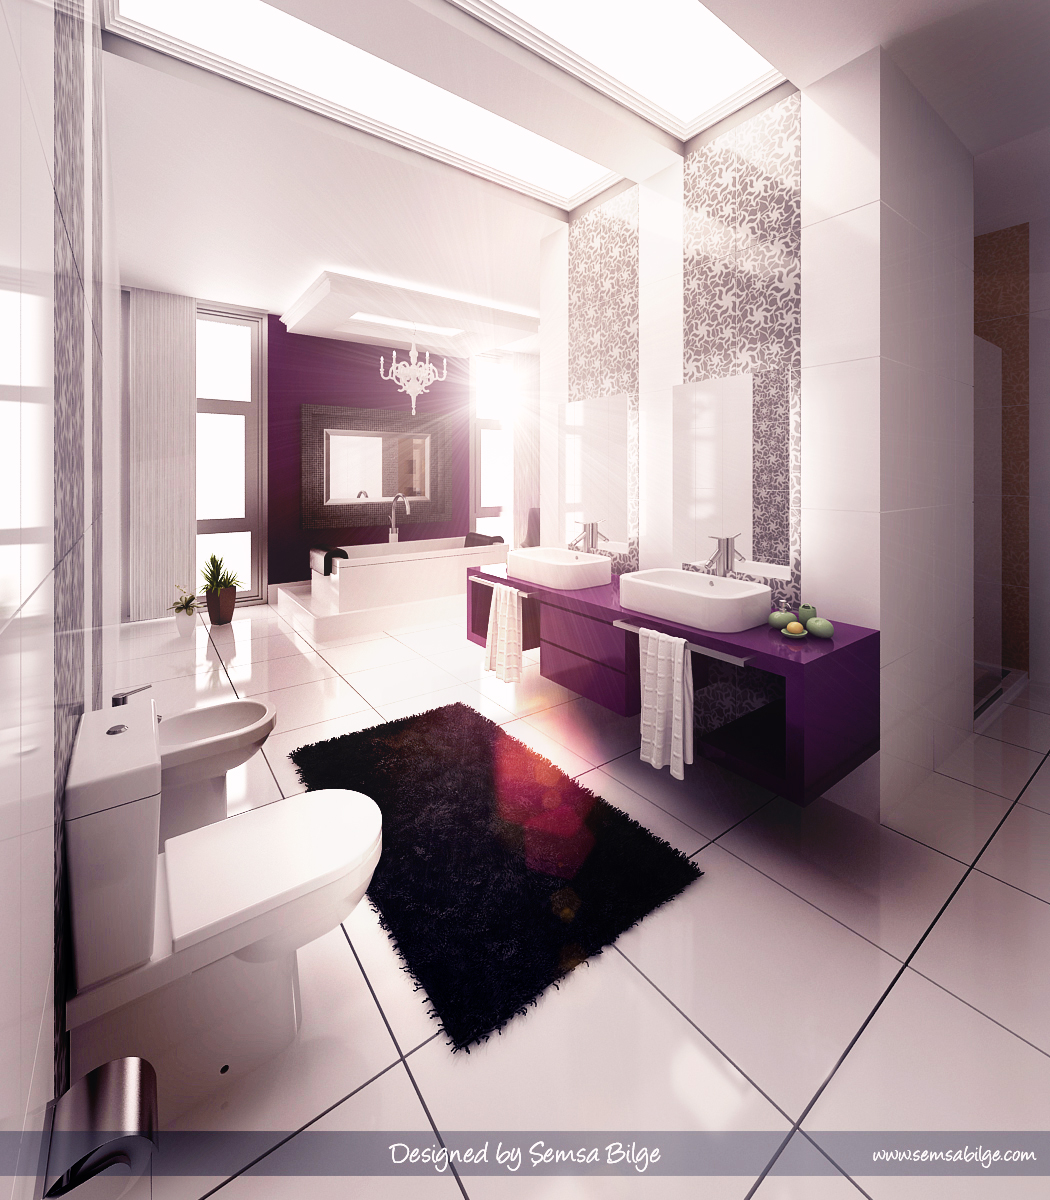 Beautiful bathroom designs ideas interior design for Beautiful toilet designs